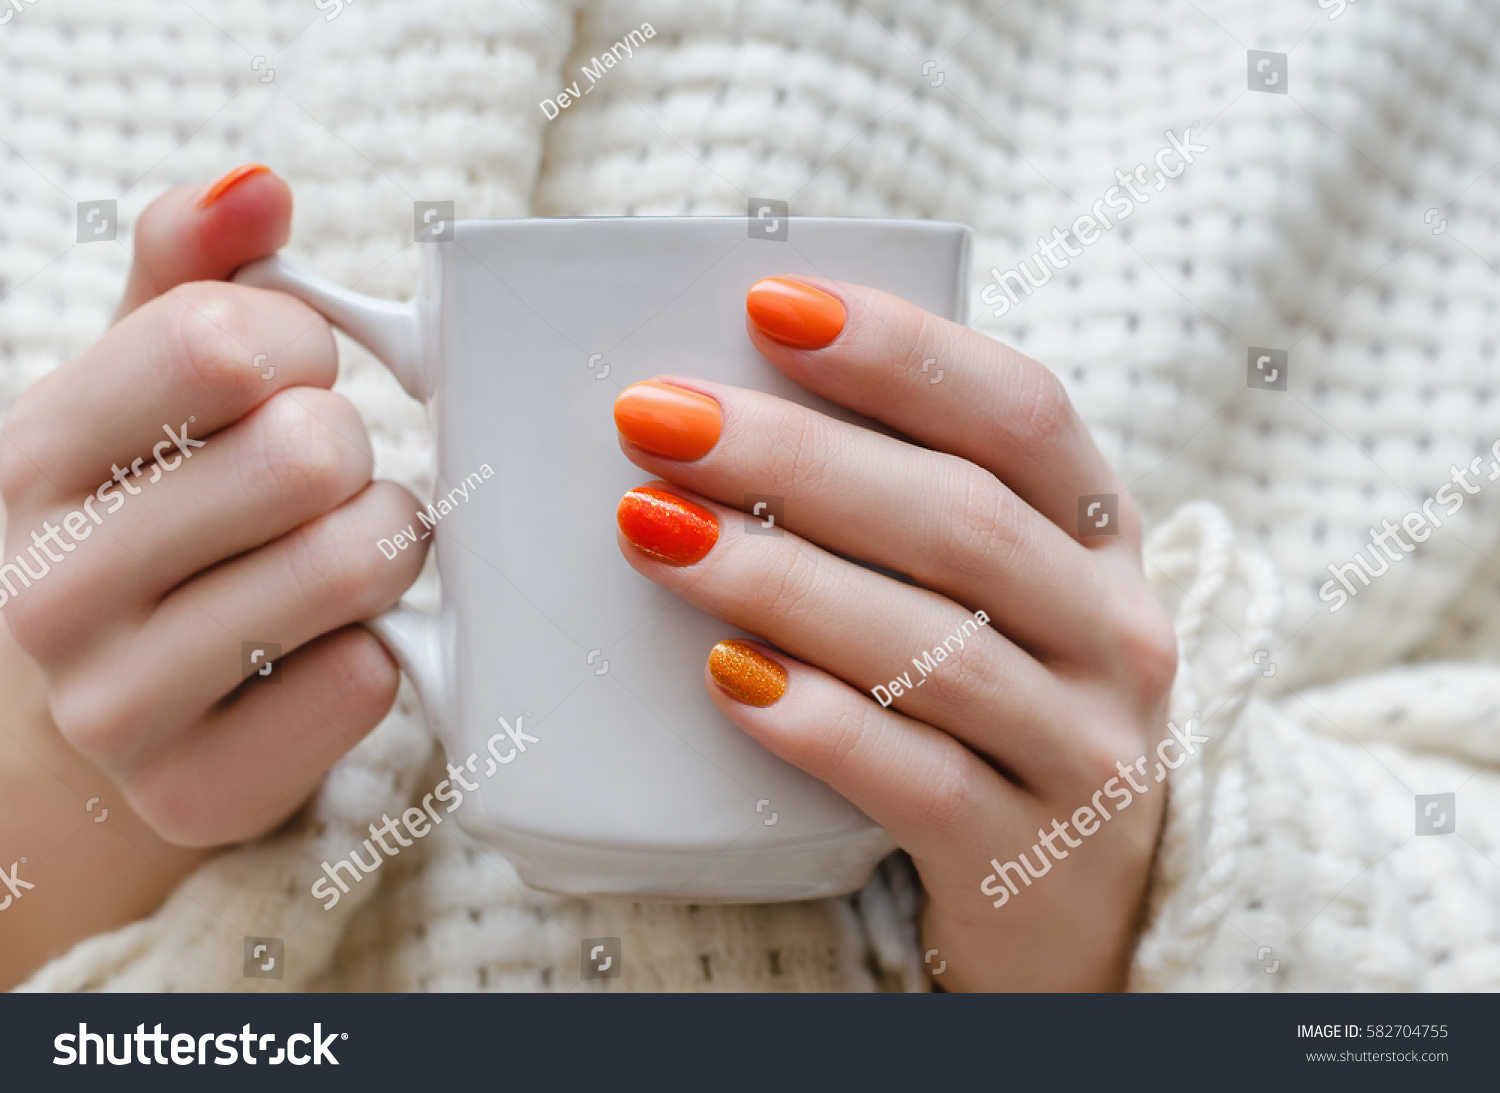 Female hands orange nail design holding stock photo 582704755 female hands with orange nail design holding white cup prinsesfo Images